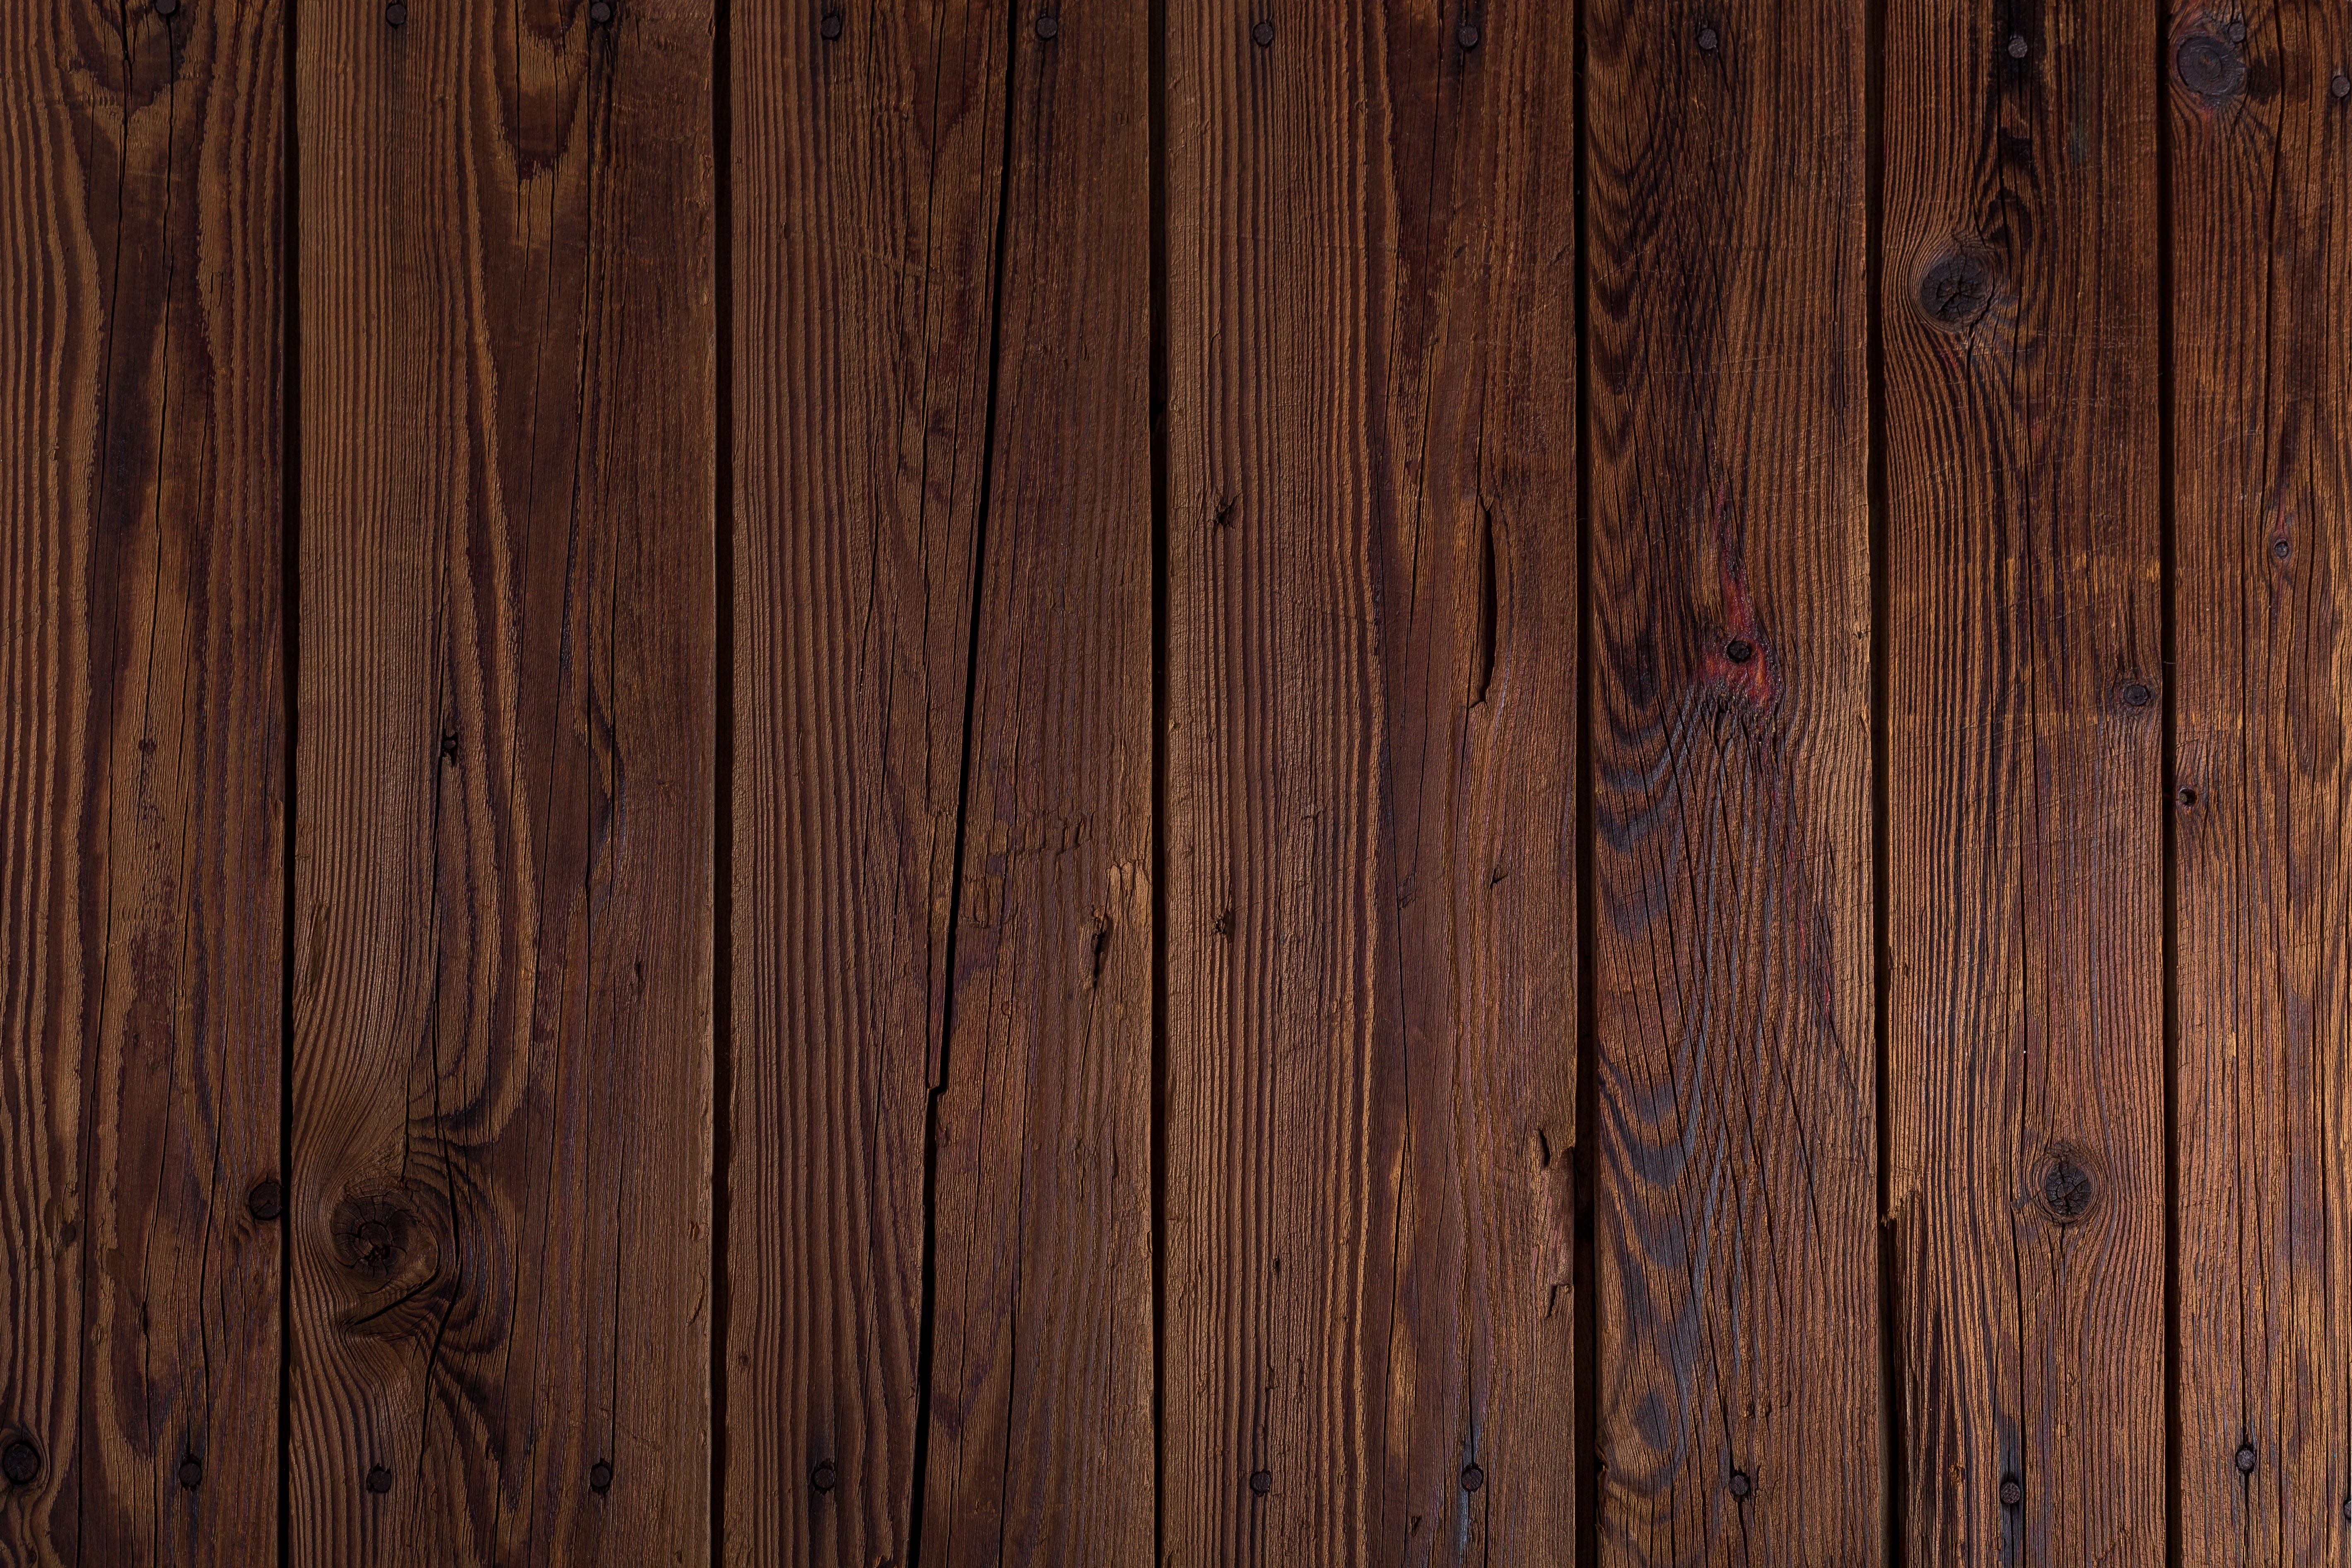 Close up of Wooden Plank. Wood Images   Pexels   Free Stock Photos